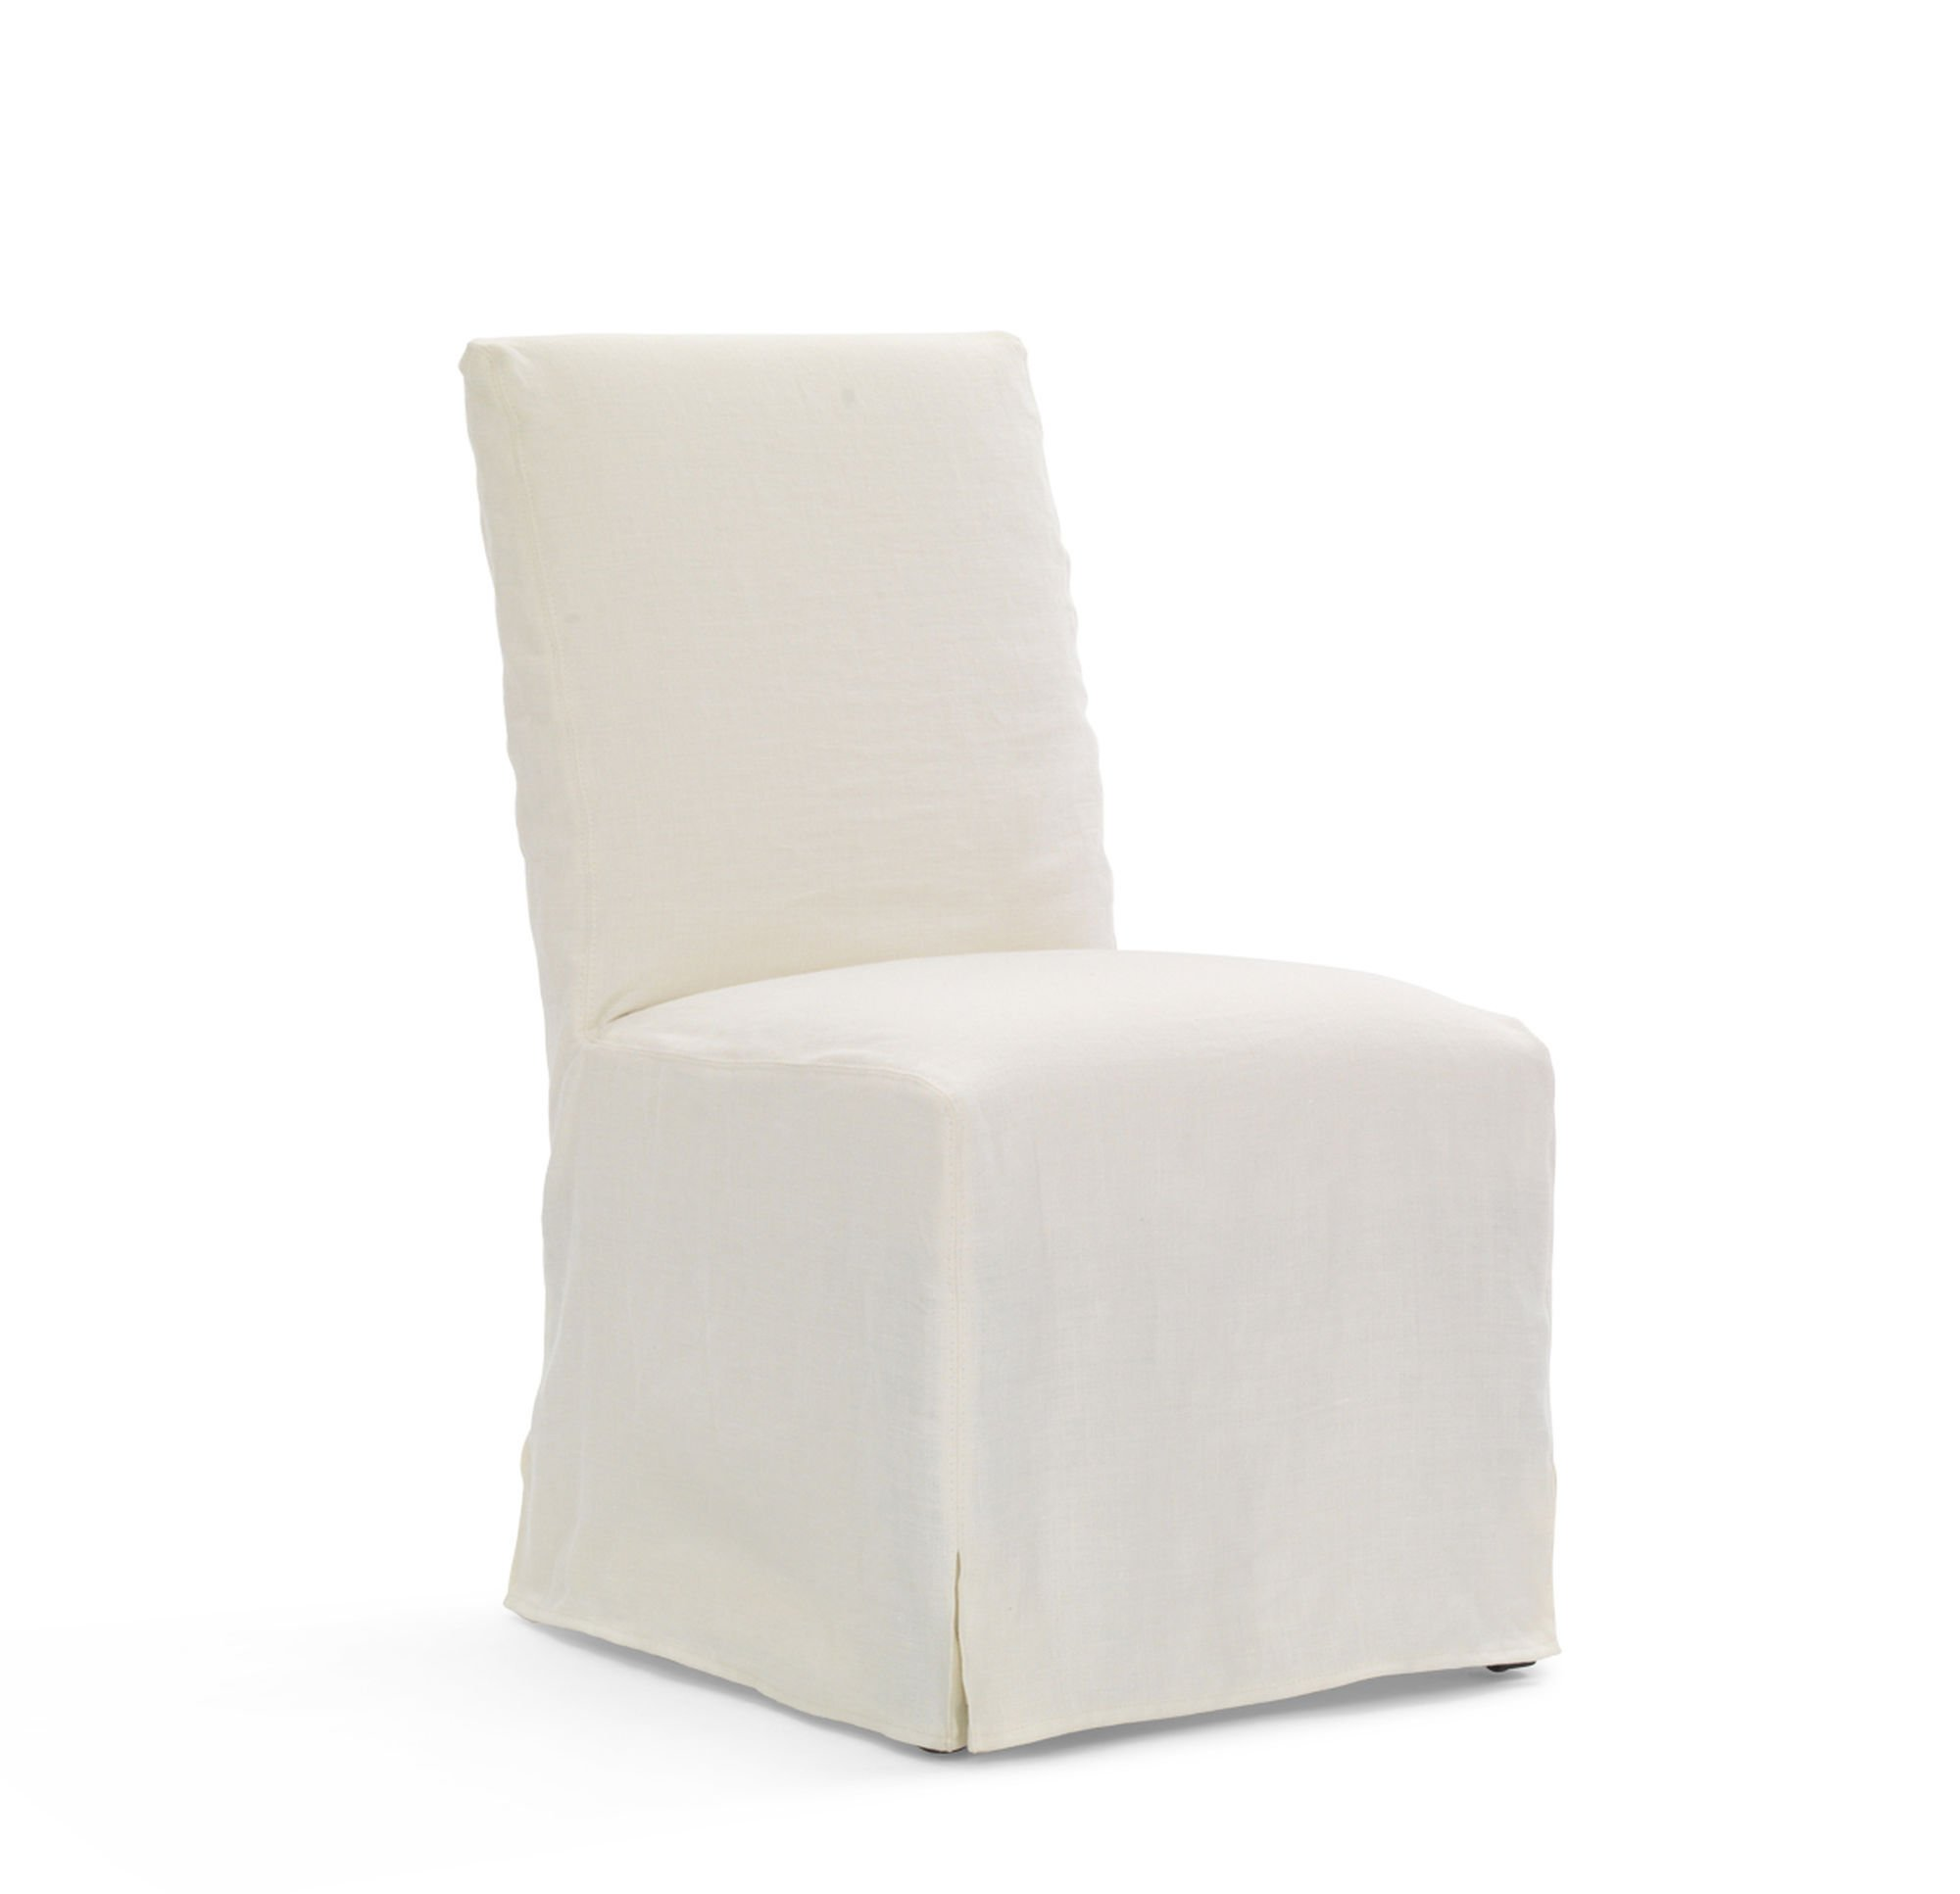 slipcovers trend dining custom industries covers files and lee room uncategorized slipcover popular amazing chair of